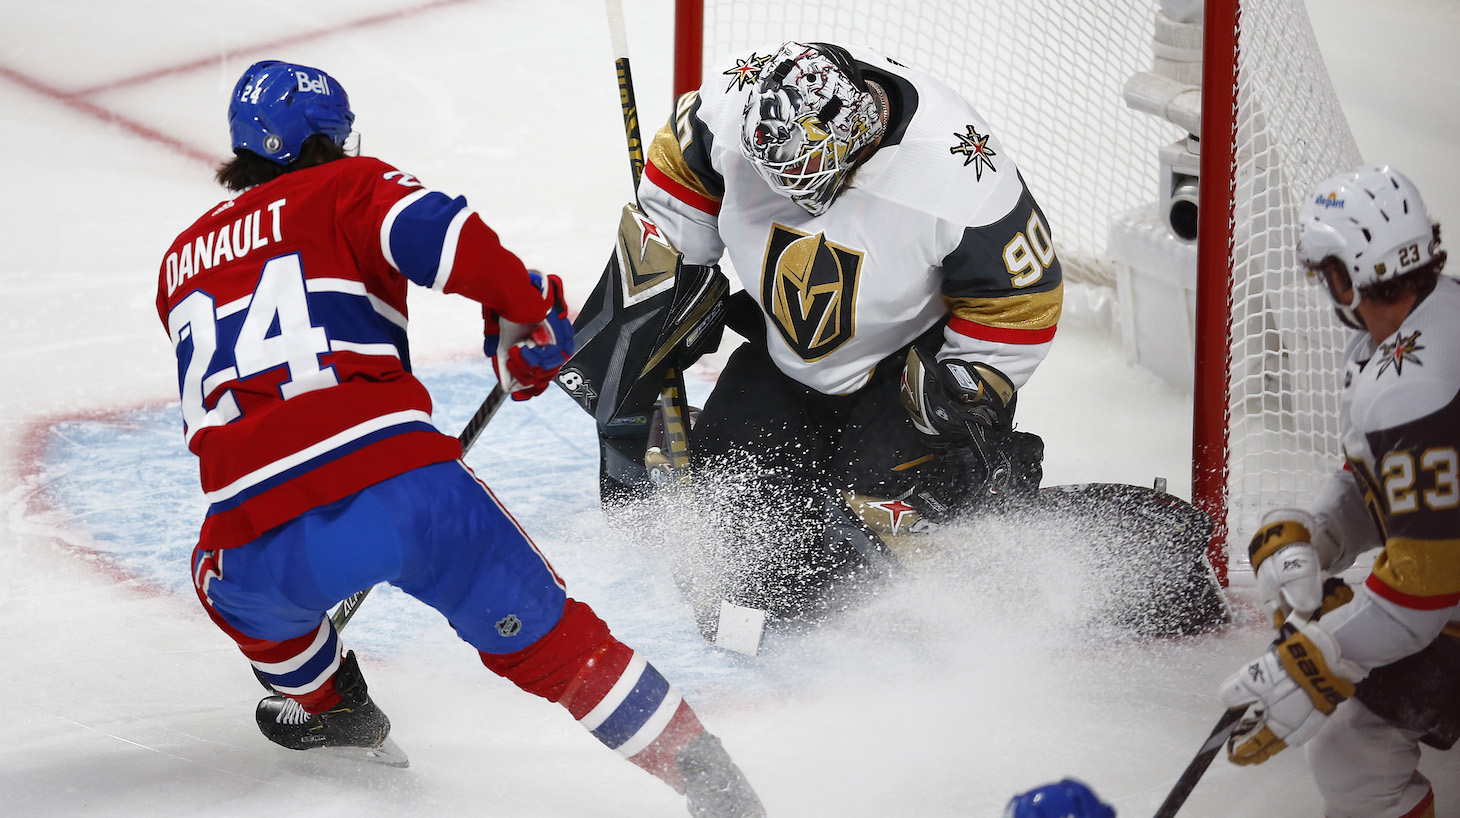 MONTREAL, QUEBEC - JUNE 20: Robin Lehner #90 of the Vegas Golden Knights makes the save against Phillip Danault #24 of the Montreal Canadiens during the second period in Game Four of the Stanley Cup Semifinals of the 2021 Stanley Cup Playoffs at Bell Centre on June 20, 2021 in Montreal, Quebec. (Photo by Vaughn Ridley/Getty Images)